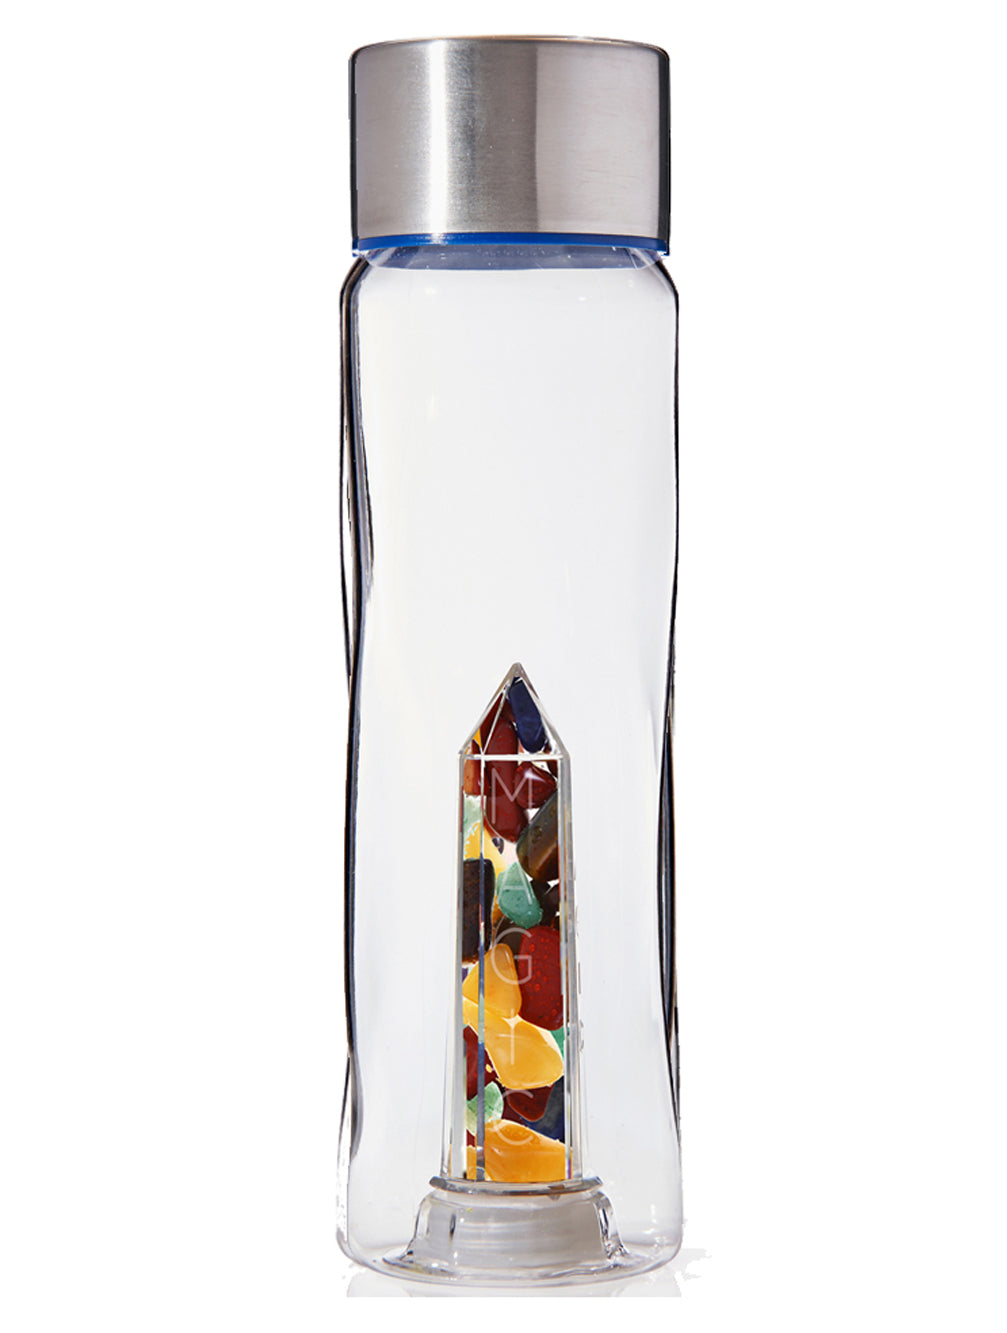 MAGIC WATER BOTTLE - Kaia London